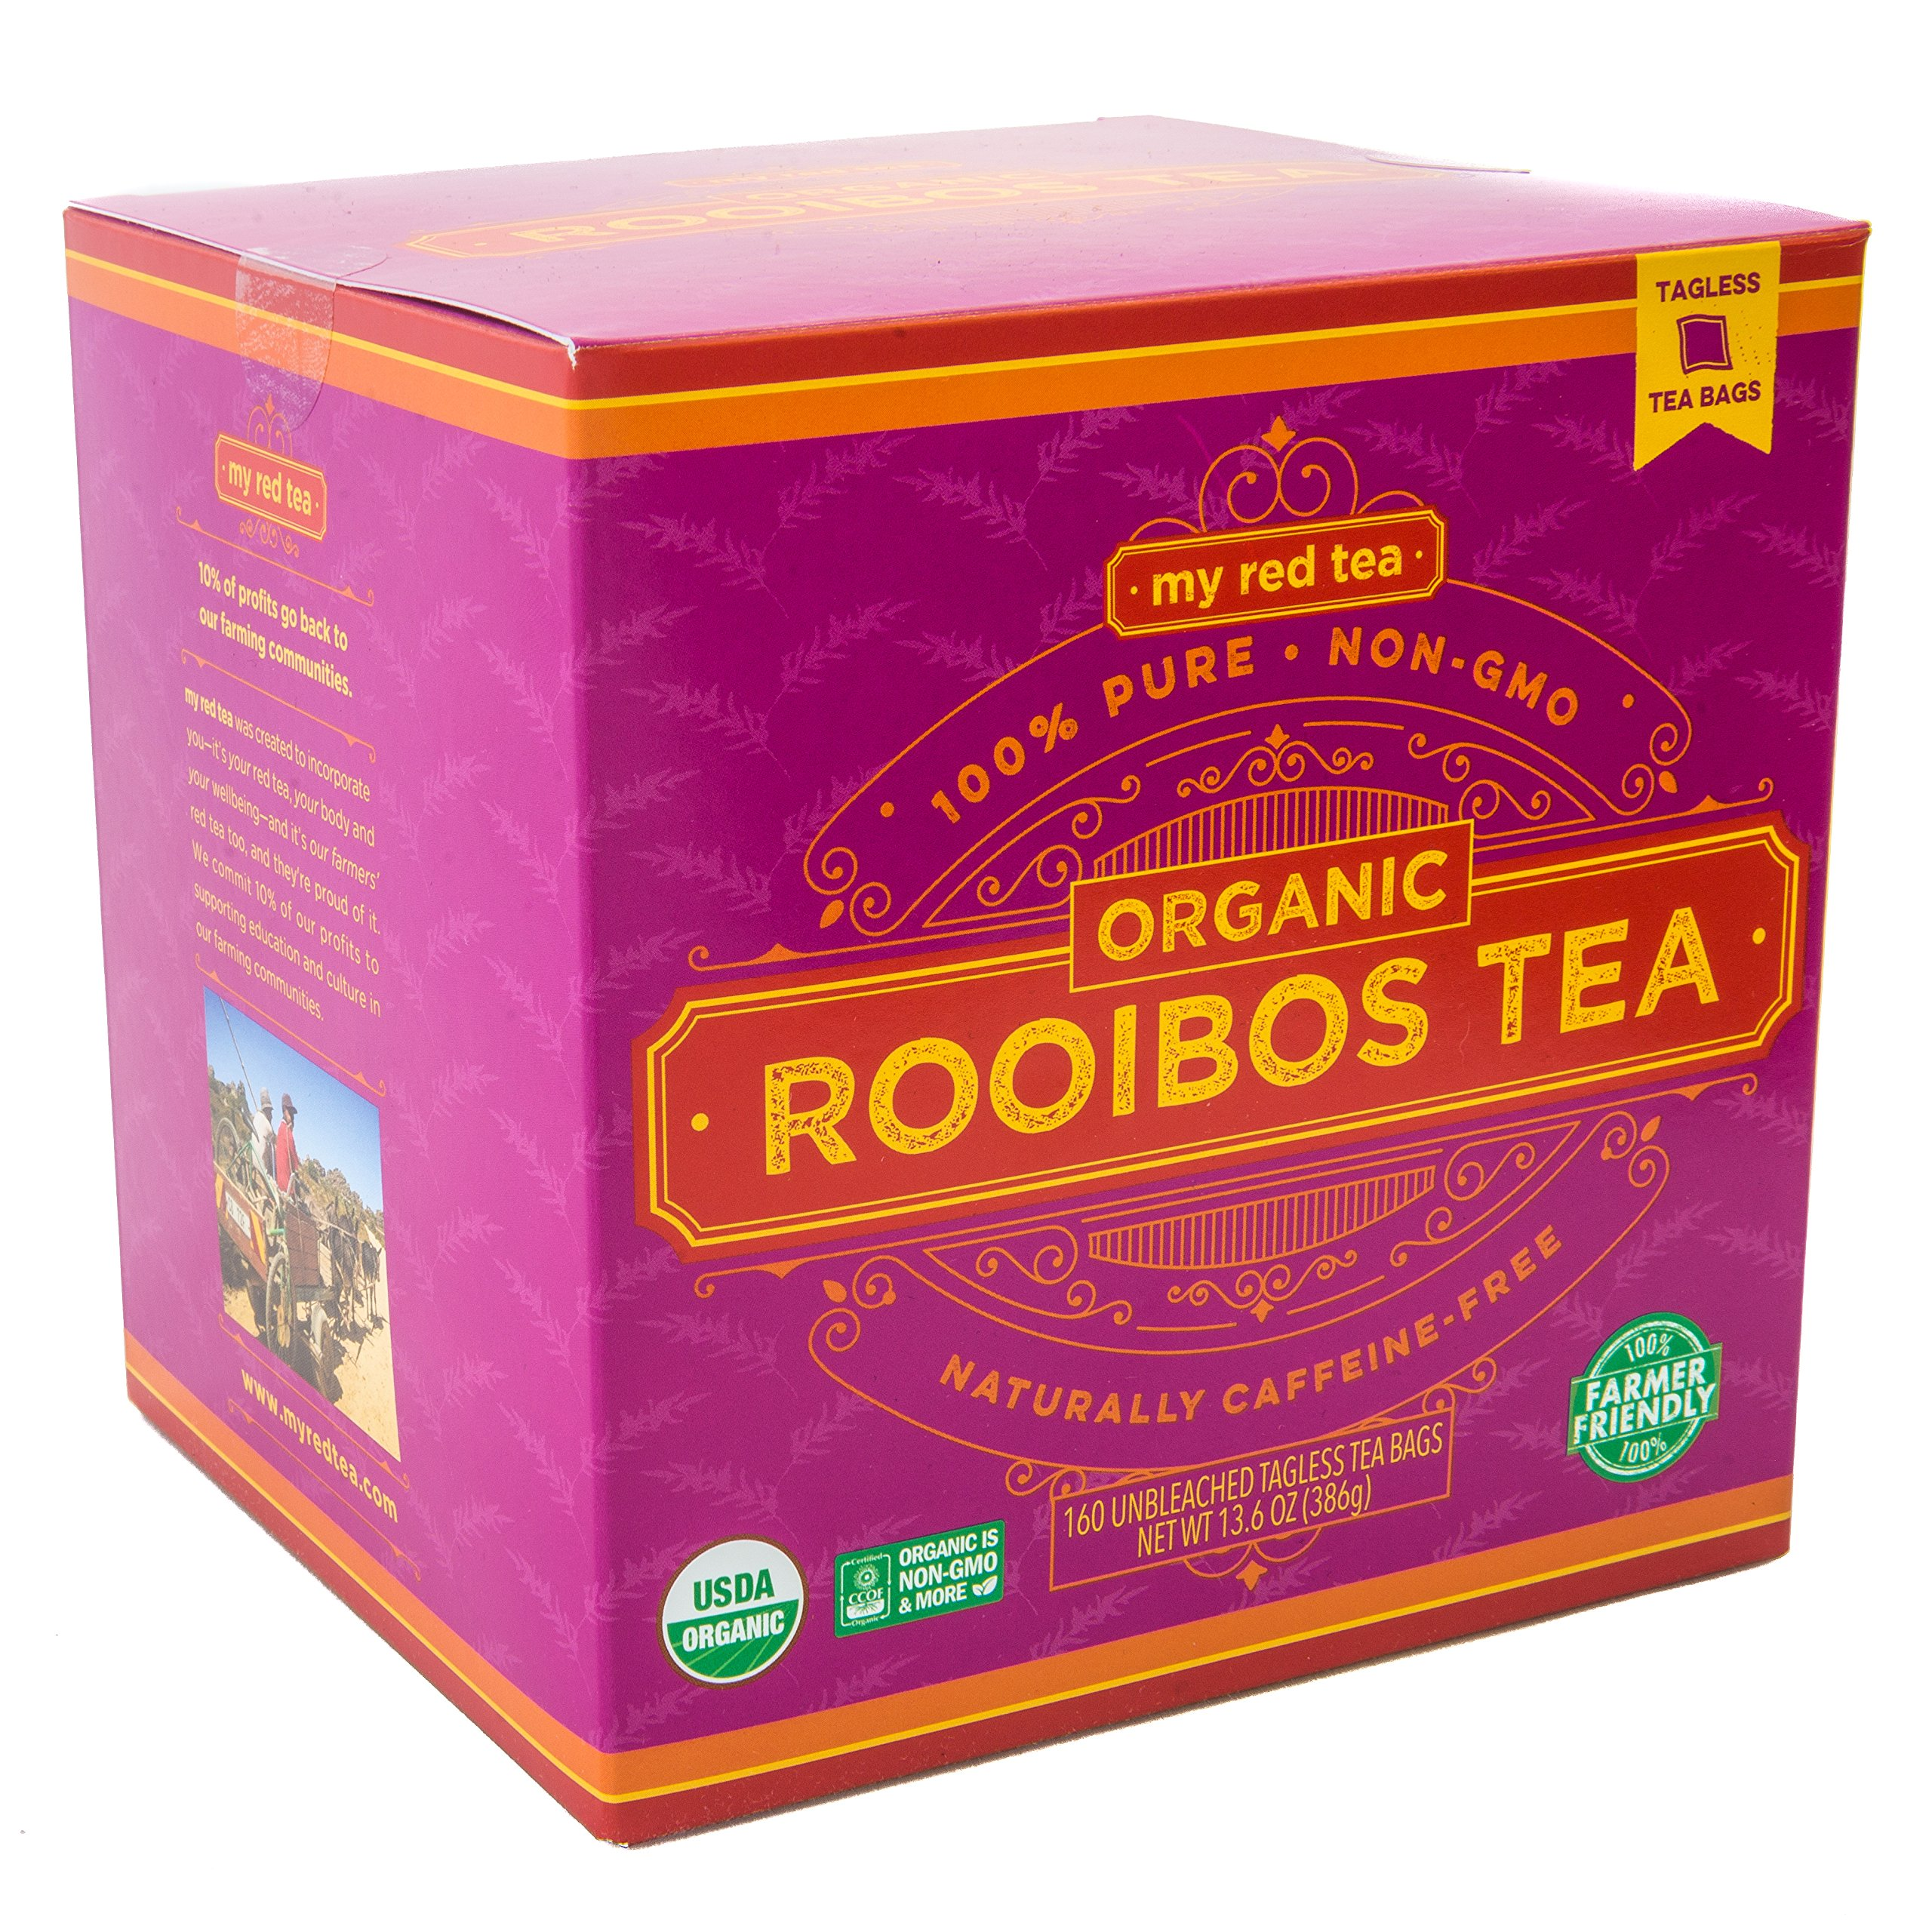 Rooibos Tea, USDA Certified Organic Tea, MY RED TEA. Tagless South African, 100% Pure, Single Origin, Natural, Farmer Friendly, GMO and Caffeine Free (160 Teabag)